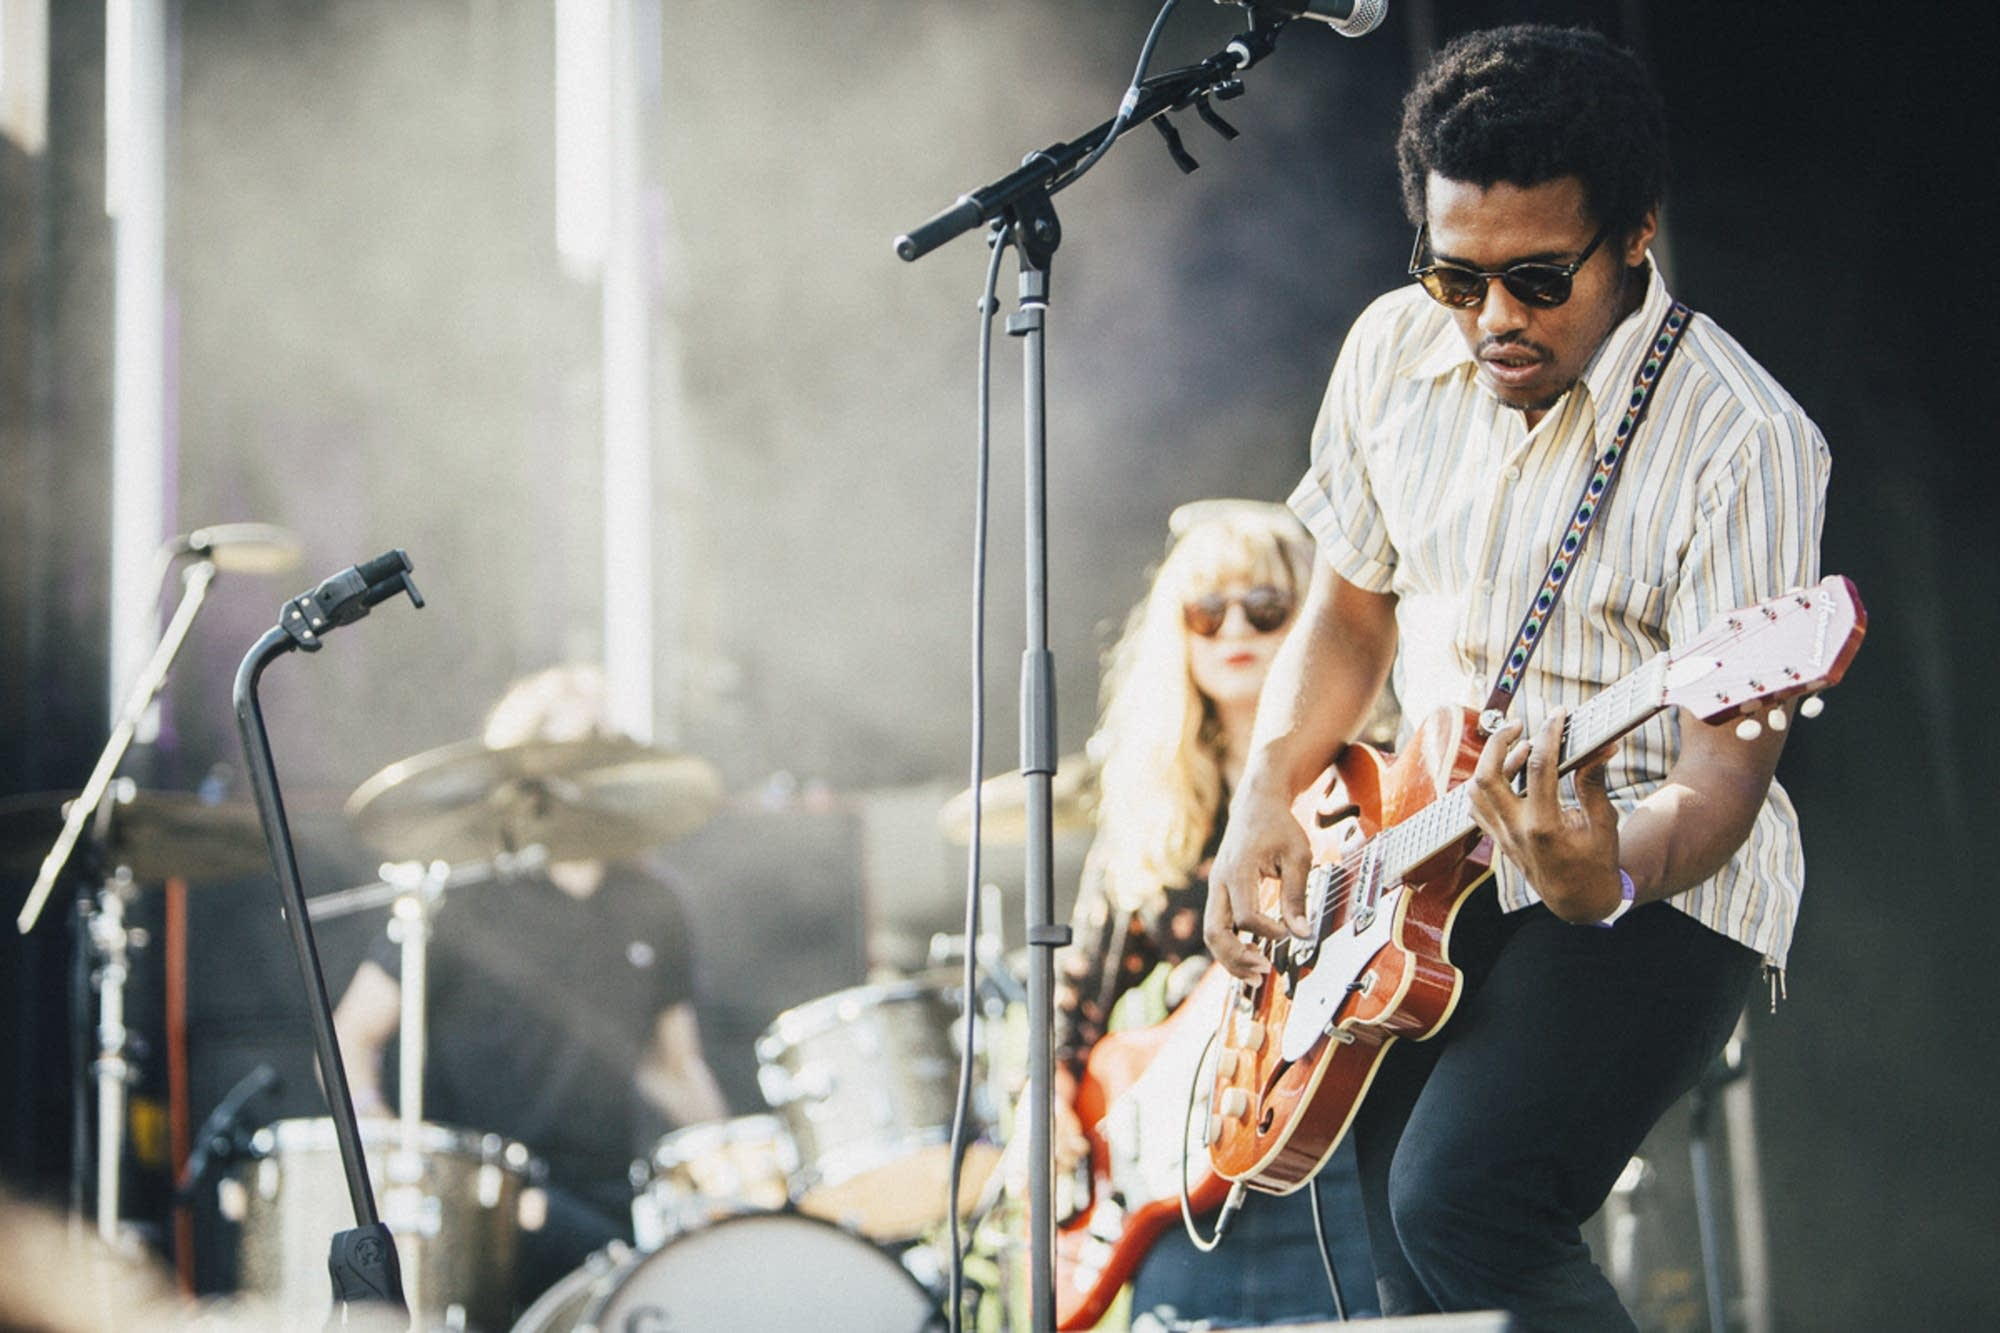 Benjamin Booker shreds on the main stage.